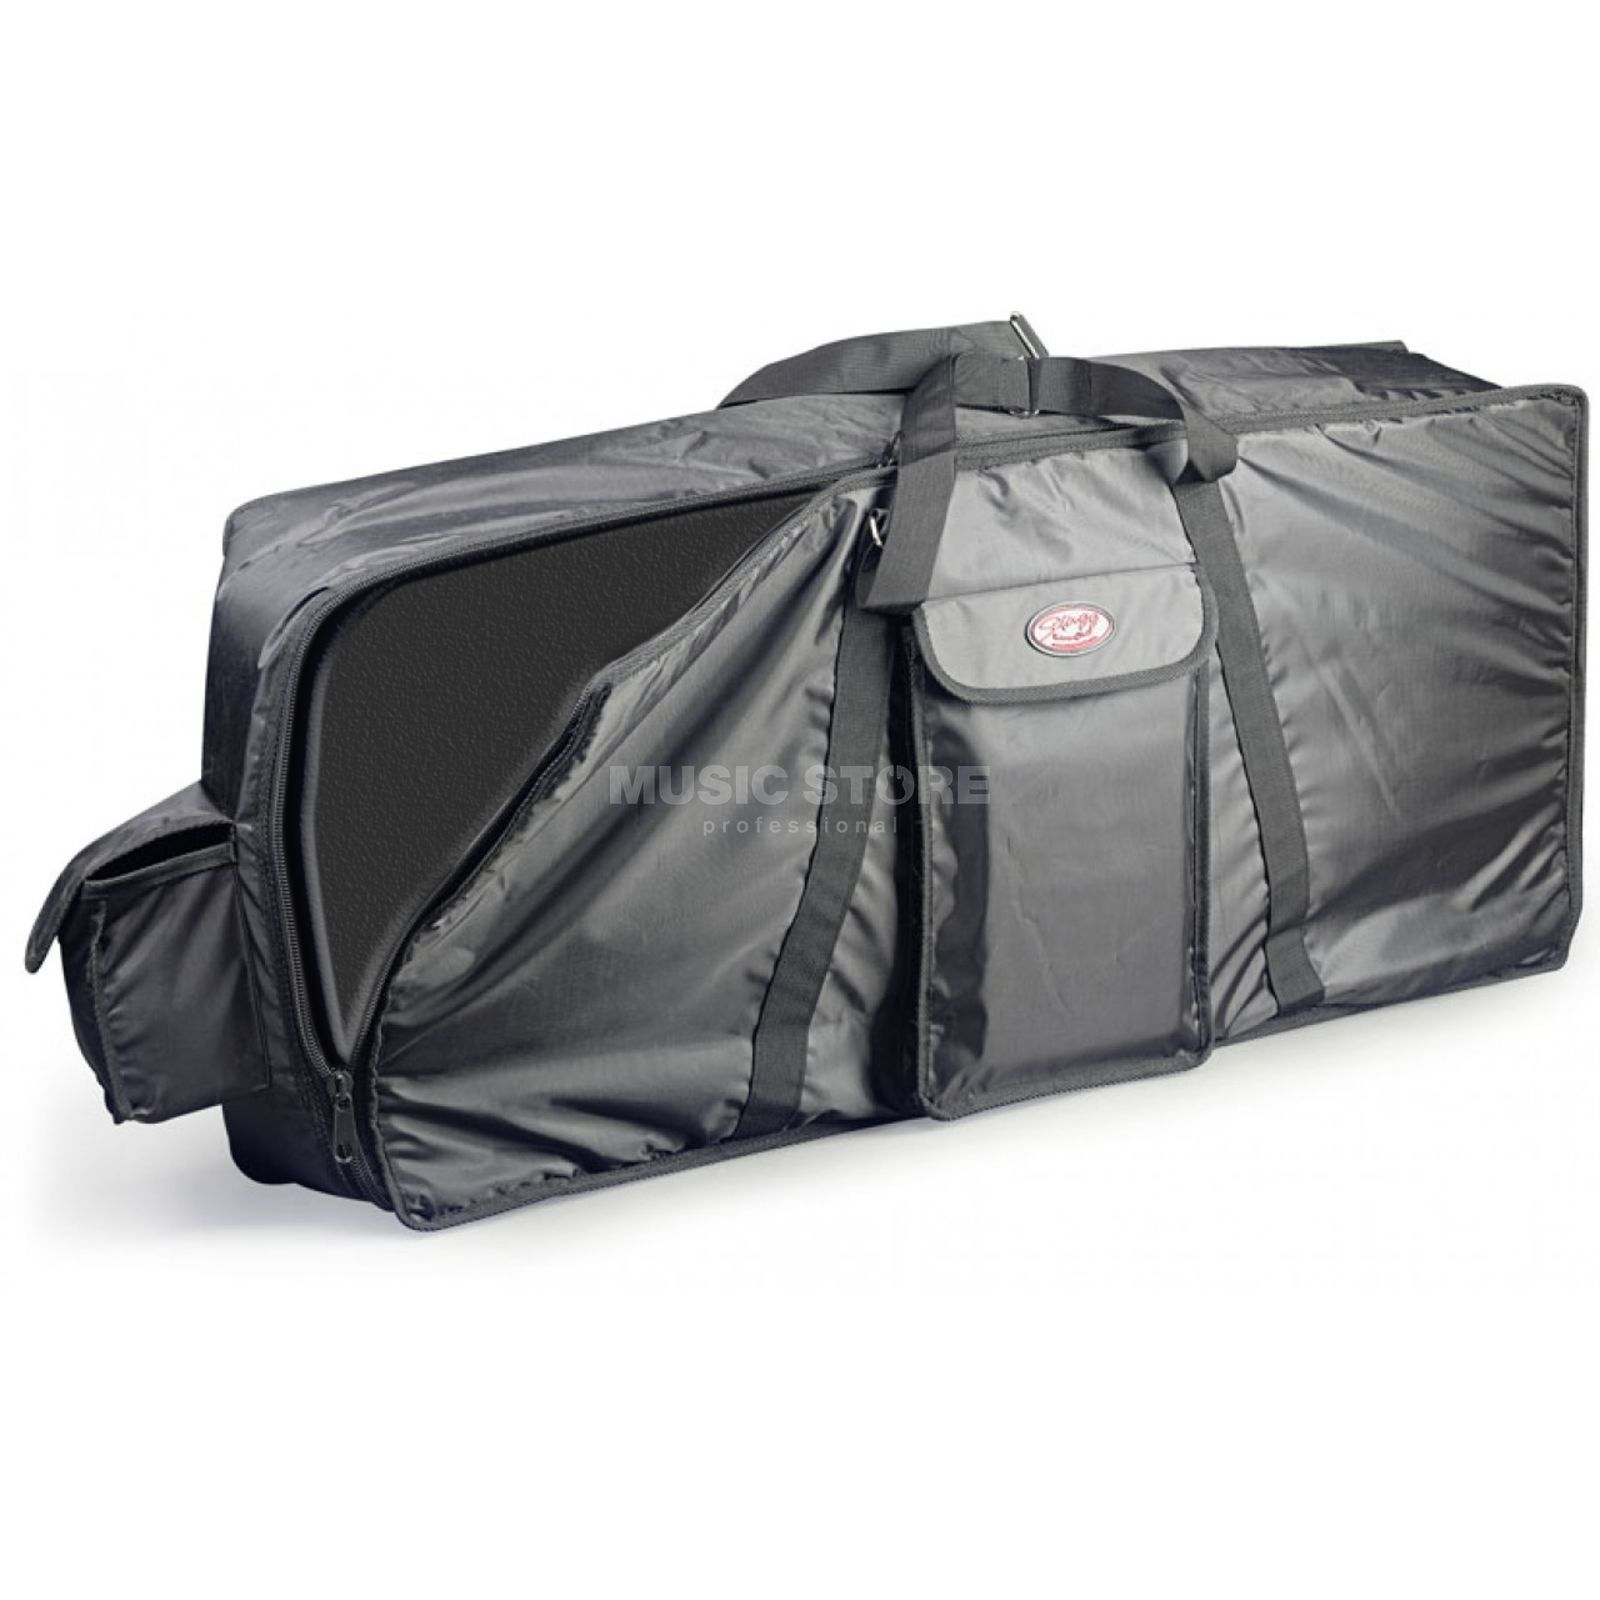 Stagg Keyboard Bag K10-099 (KC18) 99cm x 42.5cm x 16 cm (10 mm) Produktbillede